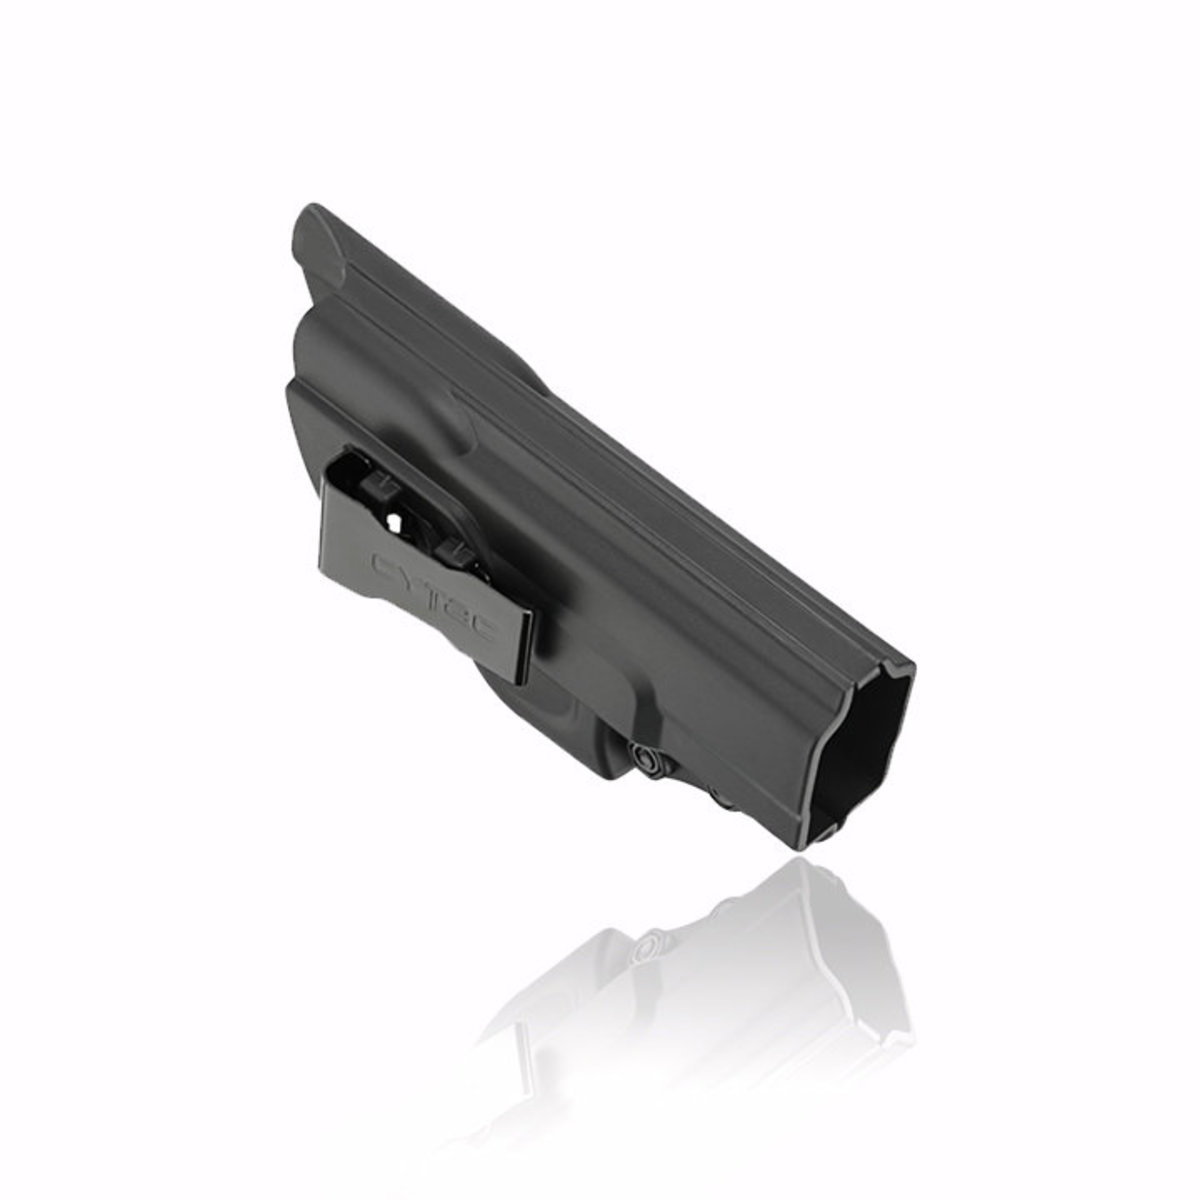 View larger image of Cytac IWB Holster - Fits Glock 43